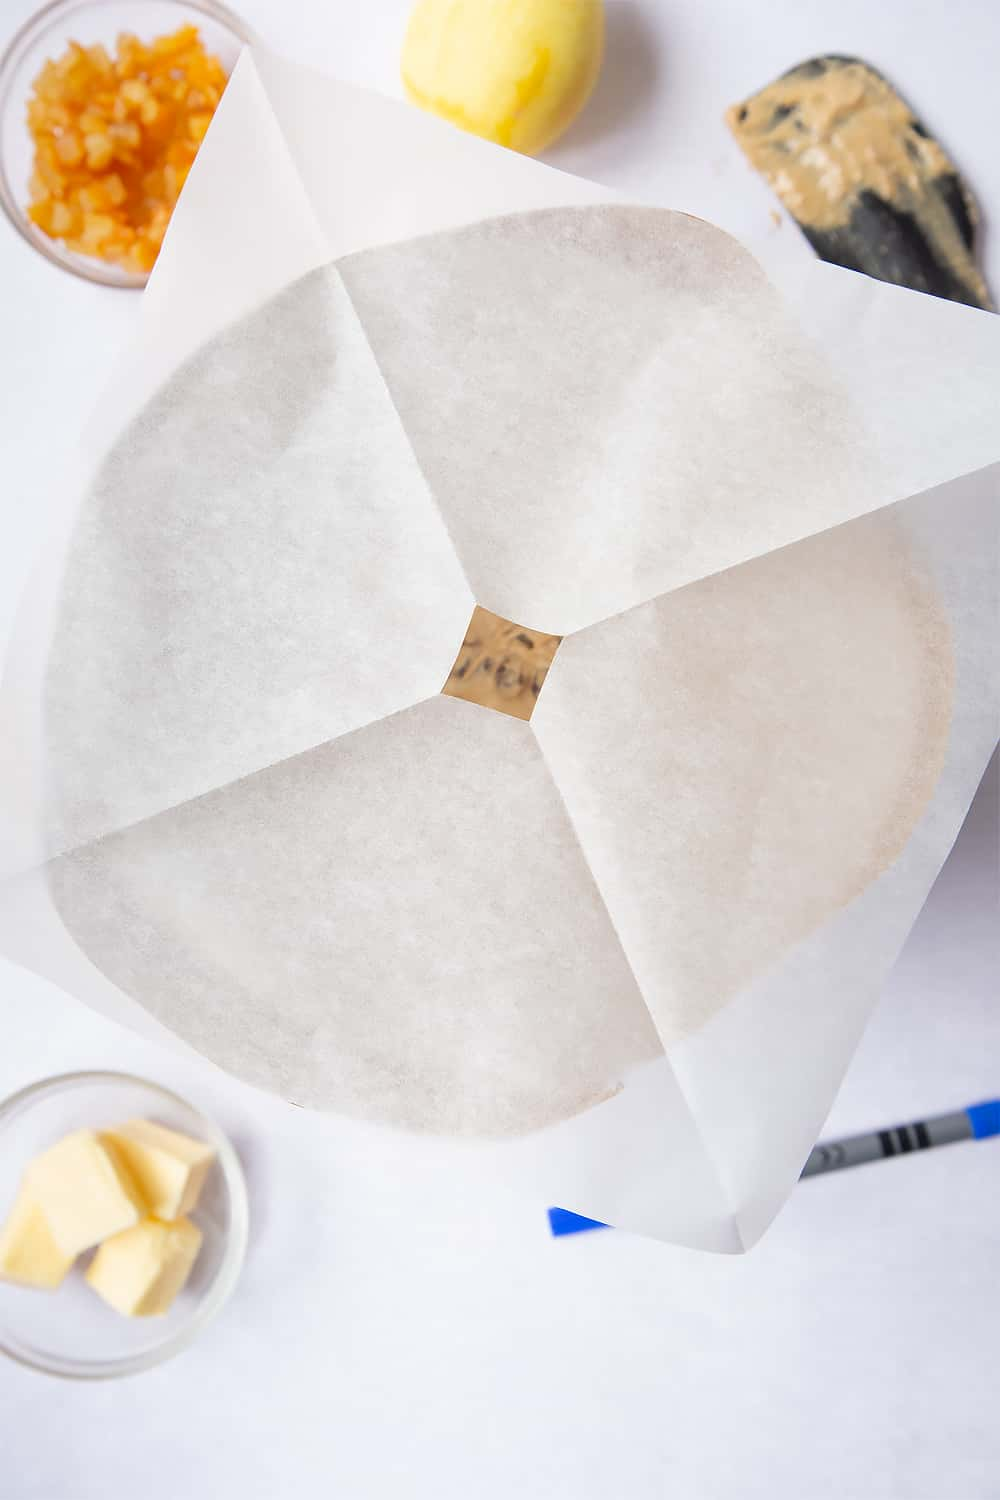 The end result of the cut of the square baking paper once unfolded from it's quartered shape.